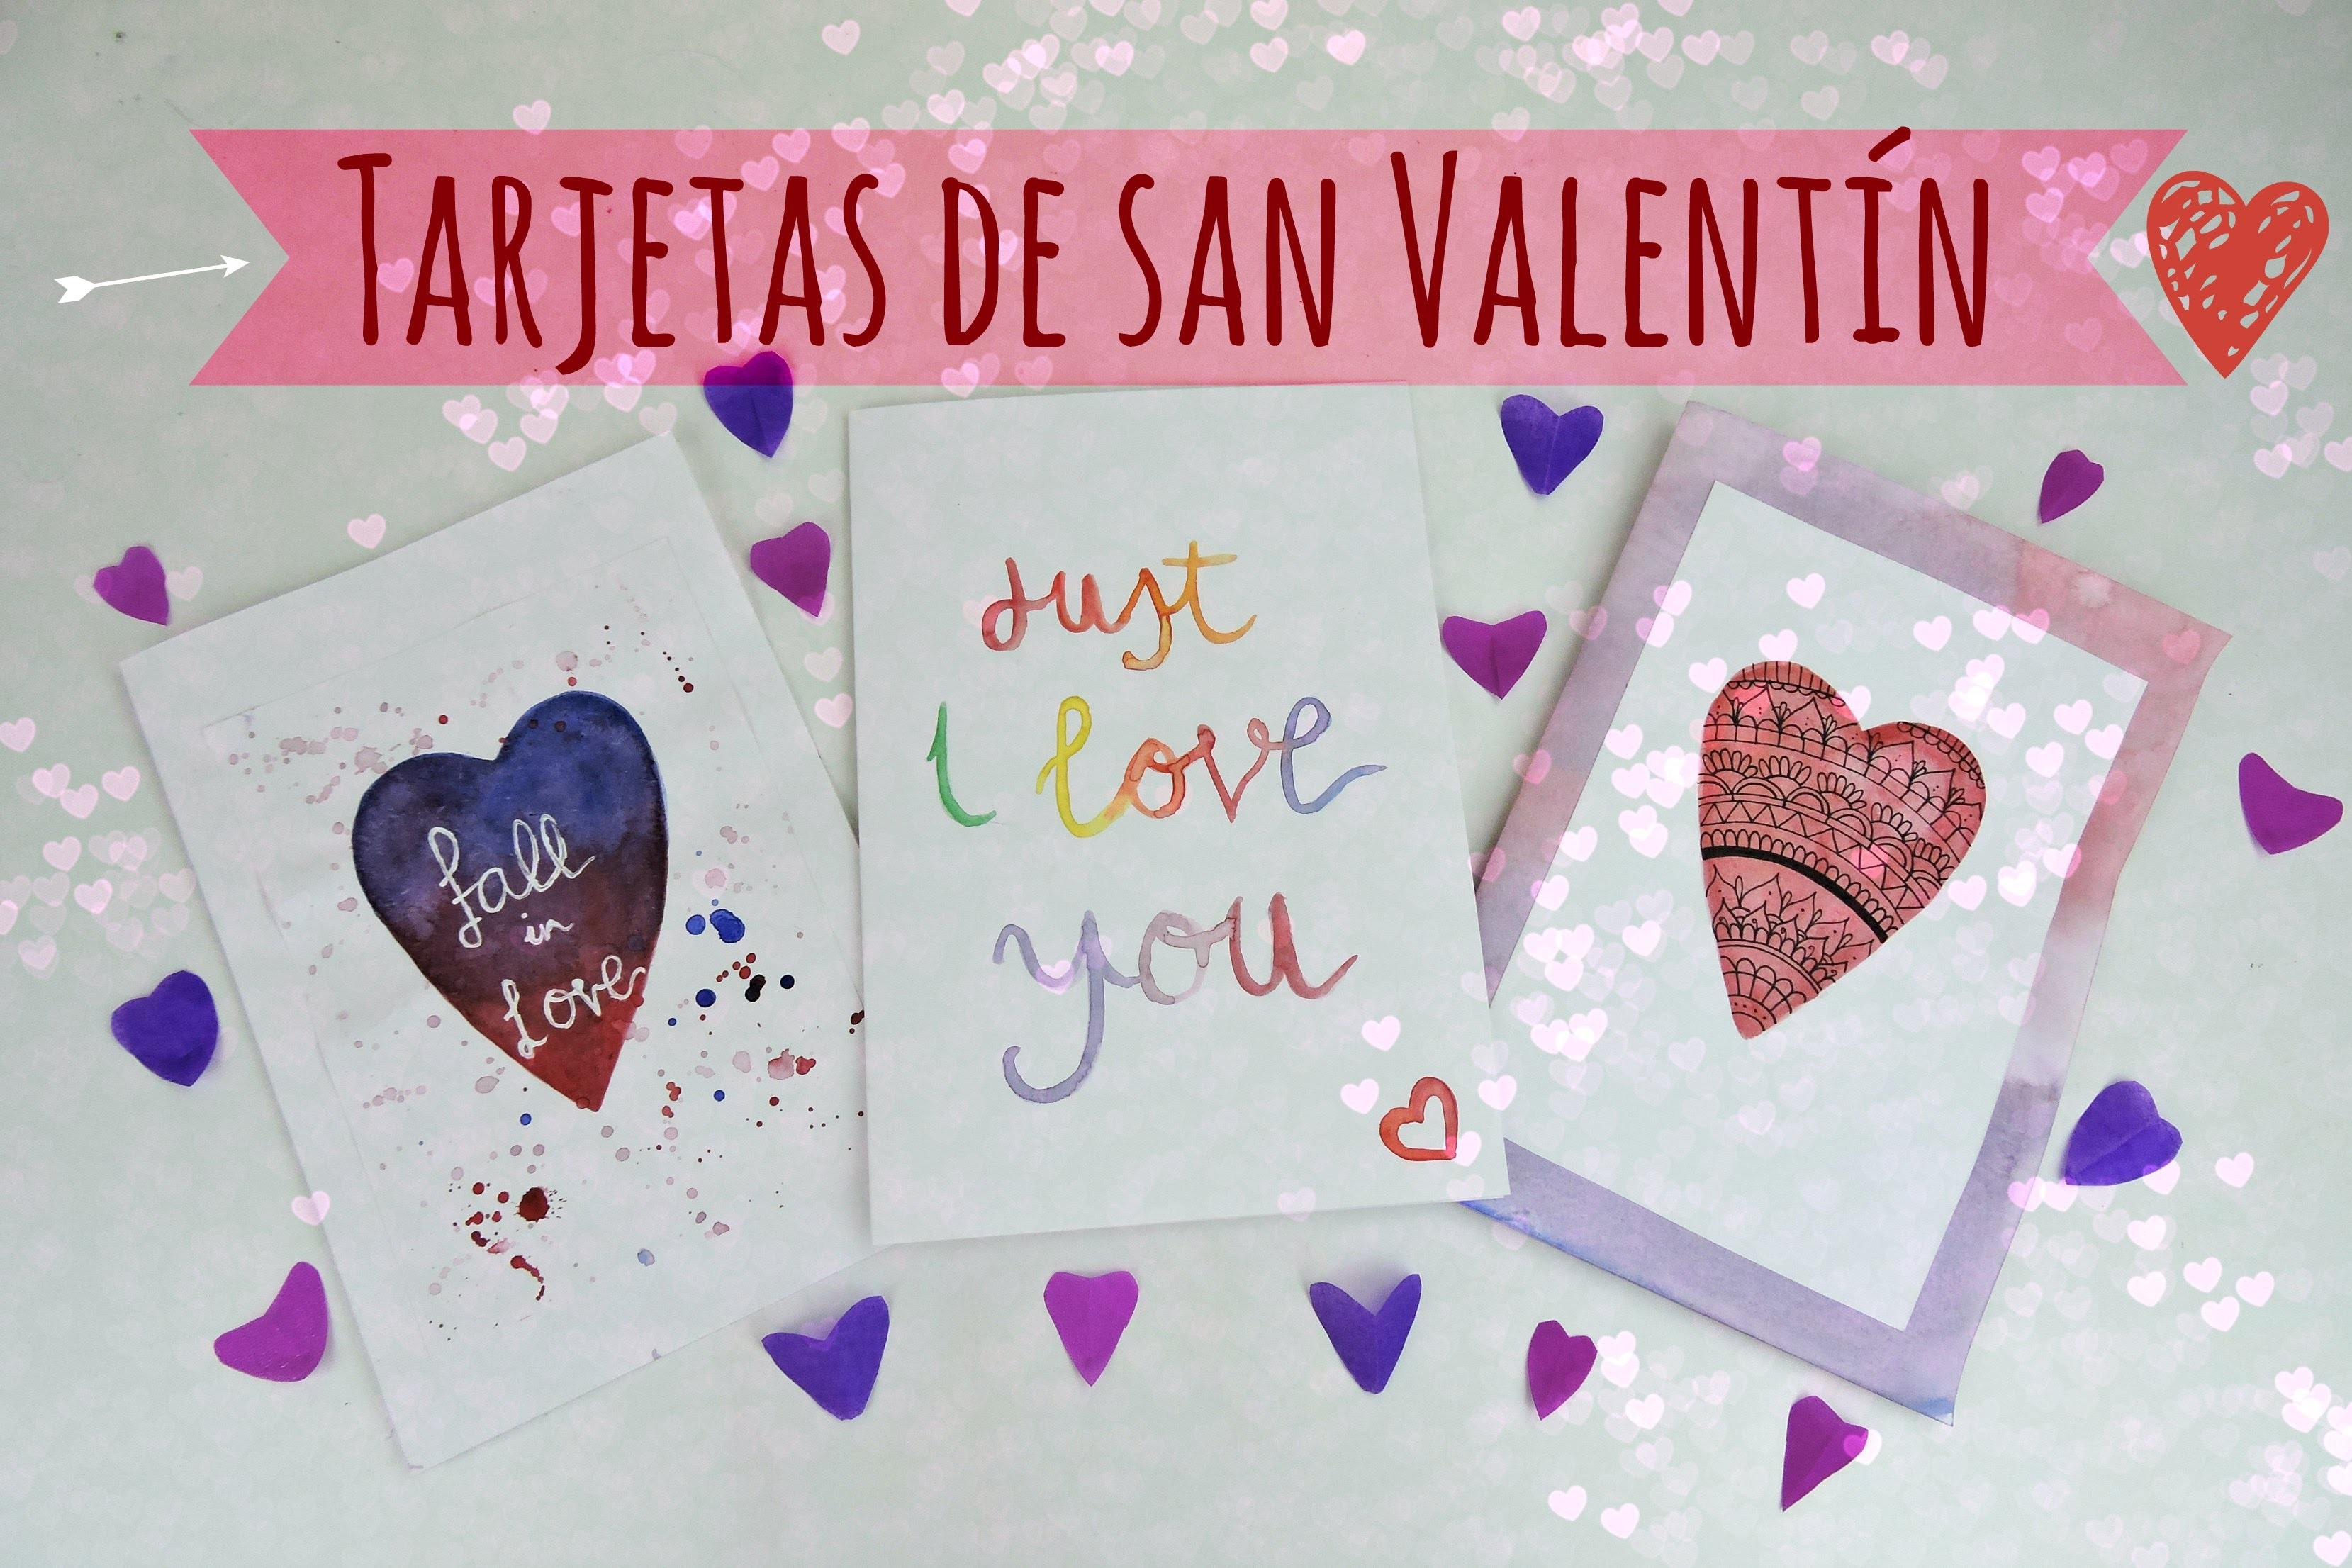 Como hacer tarjetas para san valentín - How to make San Valentine's Day card